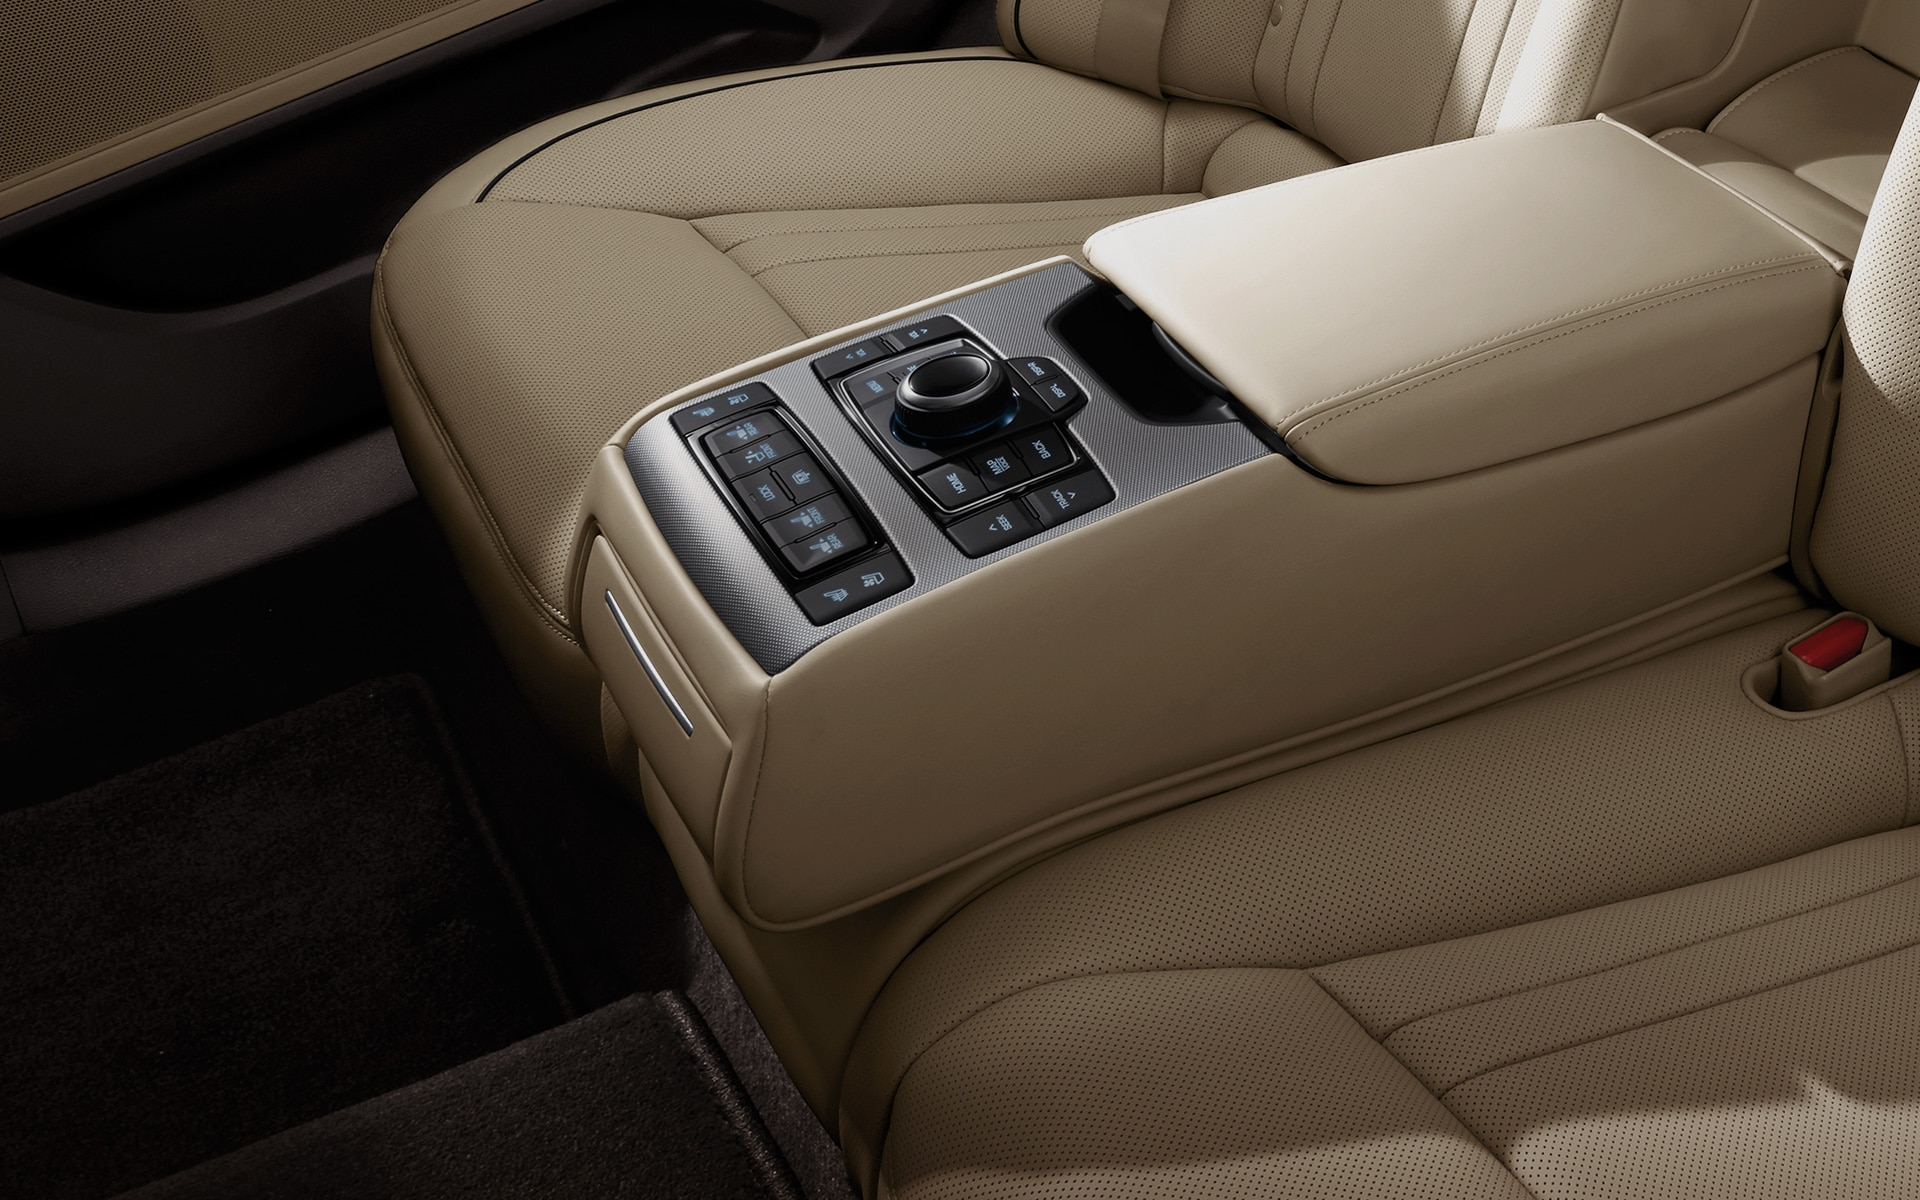 GENESIS G80 Innovation Features - Remote Control Panel for Rear Seats